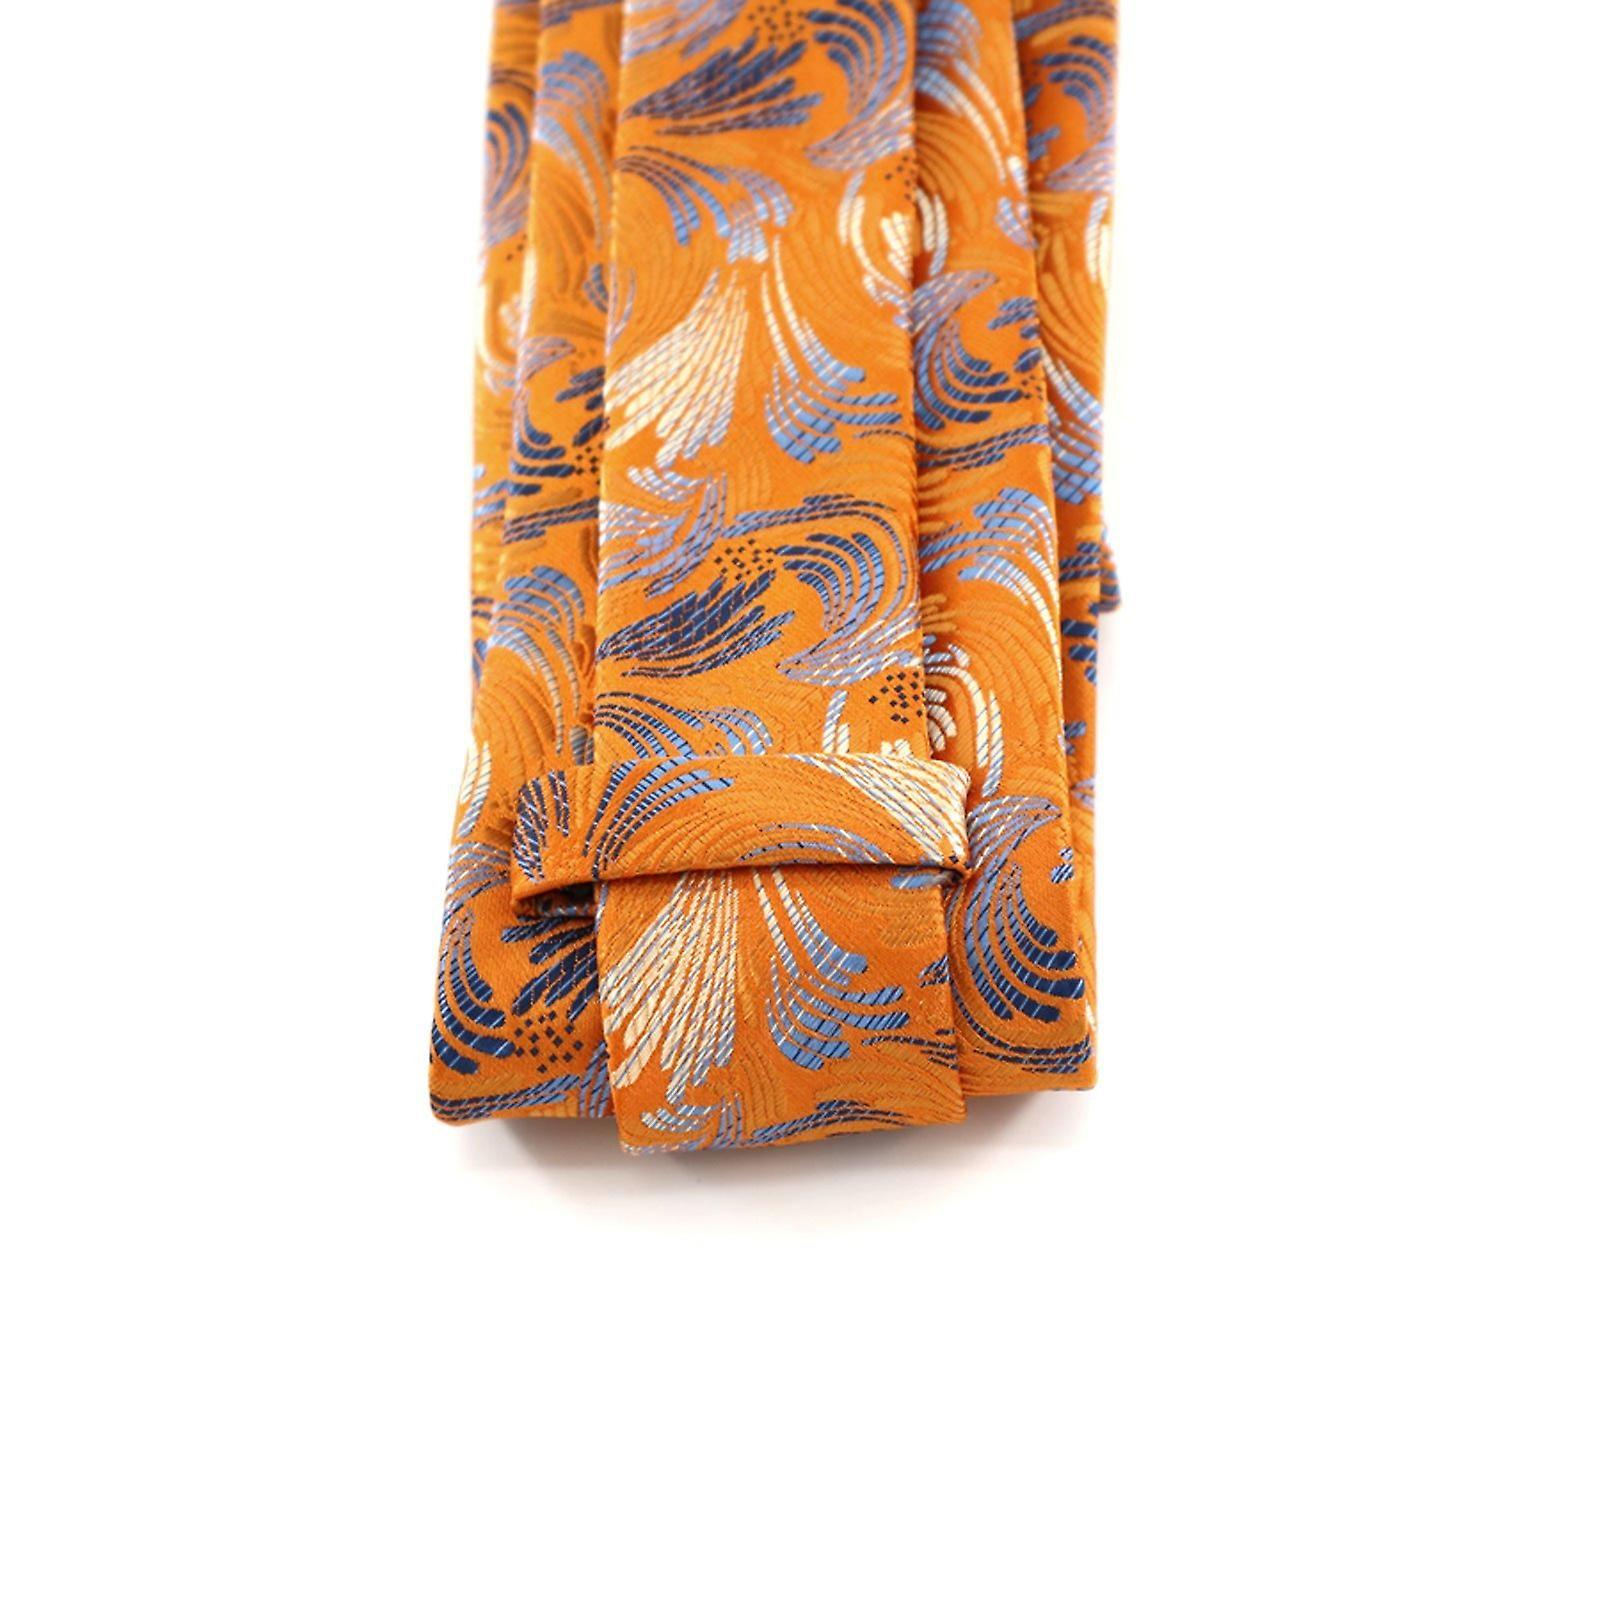 Orange & silver floral designer tie & pocket square set